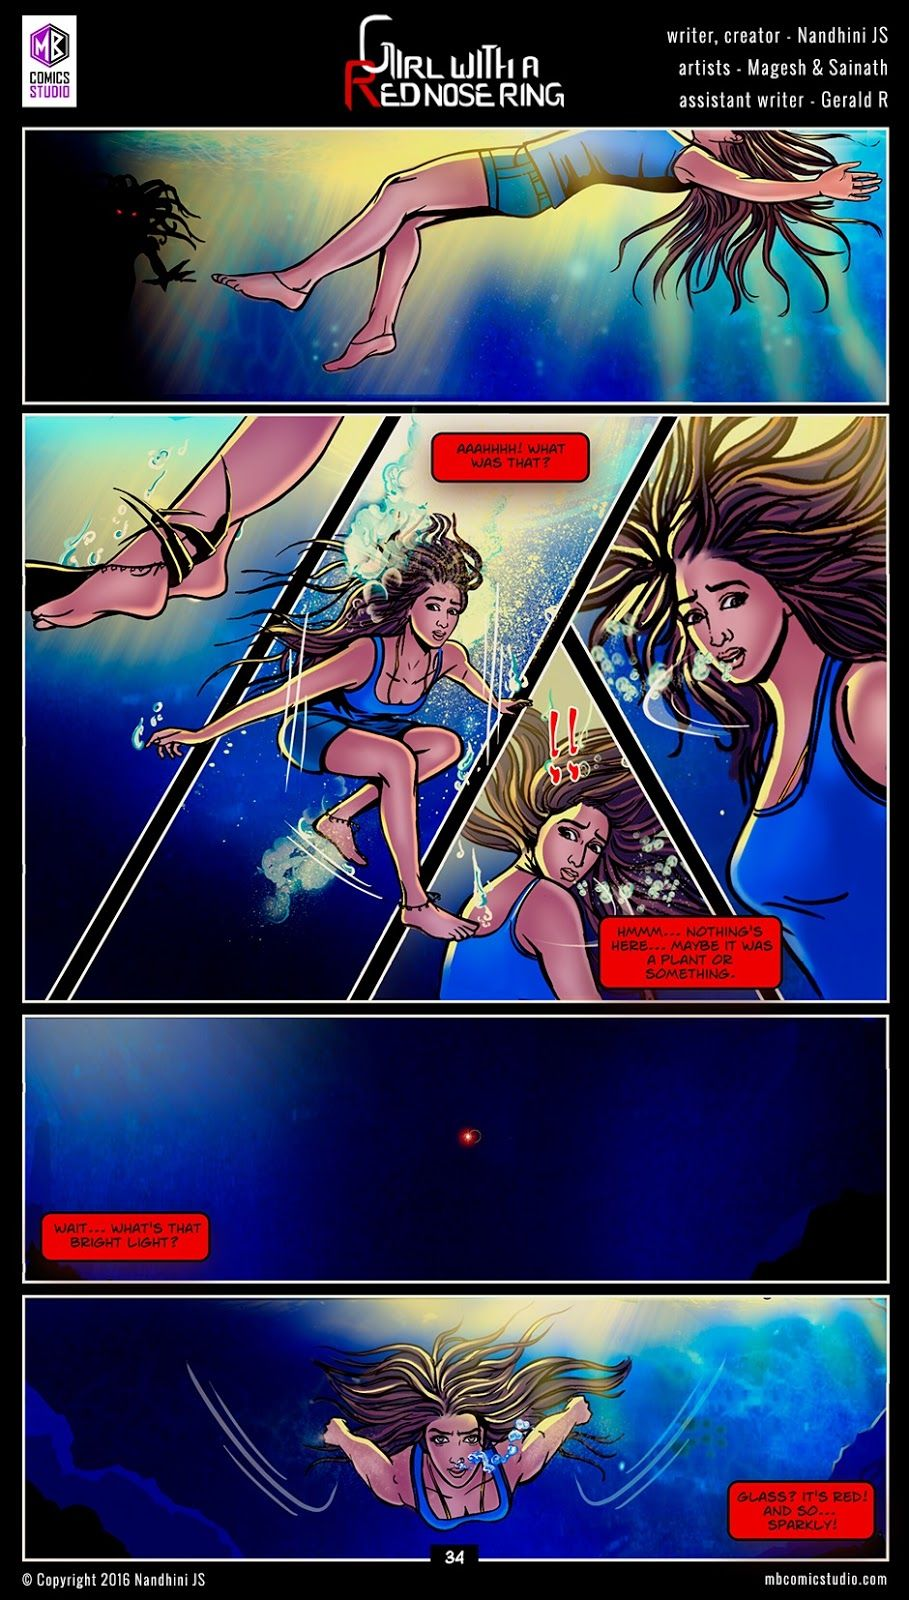 Page 34 - Nandhini's 'Girl with a Red Nose Ring' Comics. (read free comics online, romantic books by indian authors, romantic books for teenegers, horror books in english, best place to download comic books online, comic books for children, comics for children, comics for kids, comic books for kids, best site to download comics, comic books download pdf, graphic novels for adults, graphic novels for children, graphic novels and comics, indian comic books, comic books india, webcomics